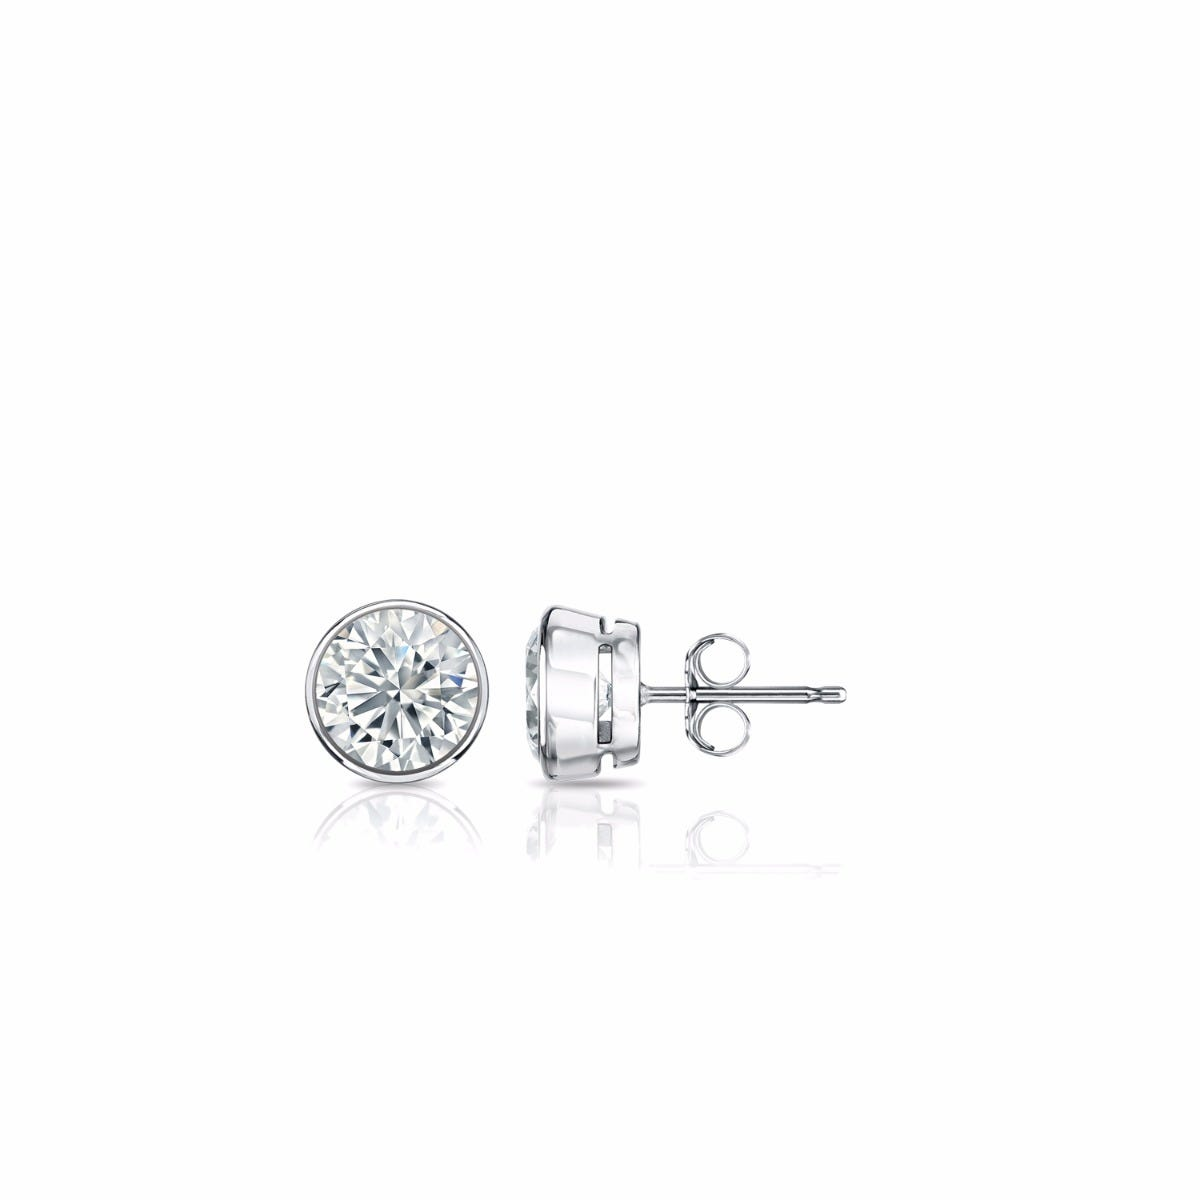 Bezel-Set Round 1/10ctw. Diamond Solitaire Stud Earrings (IJ, VS2) in 14K White Gold